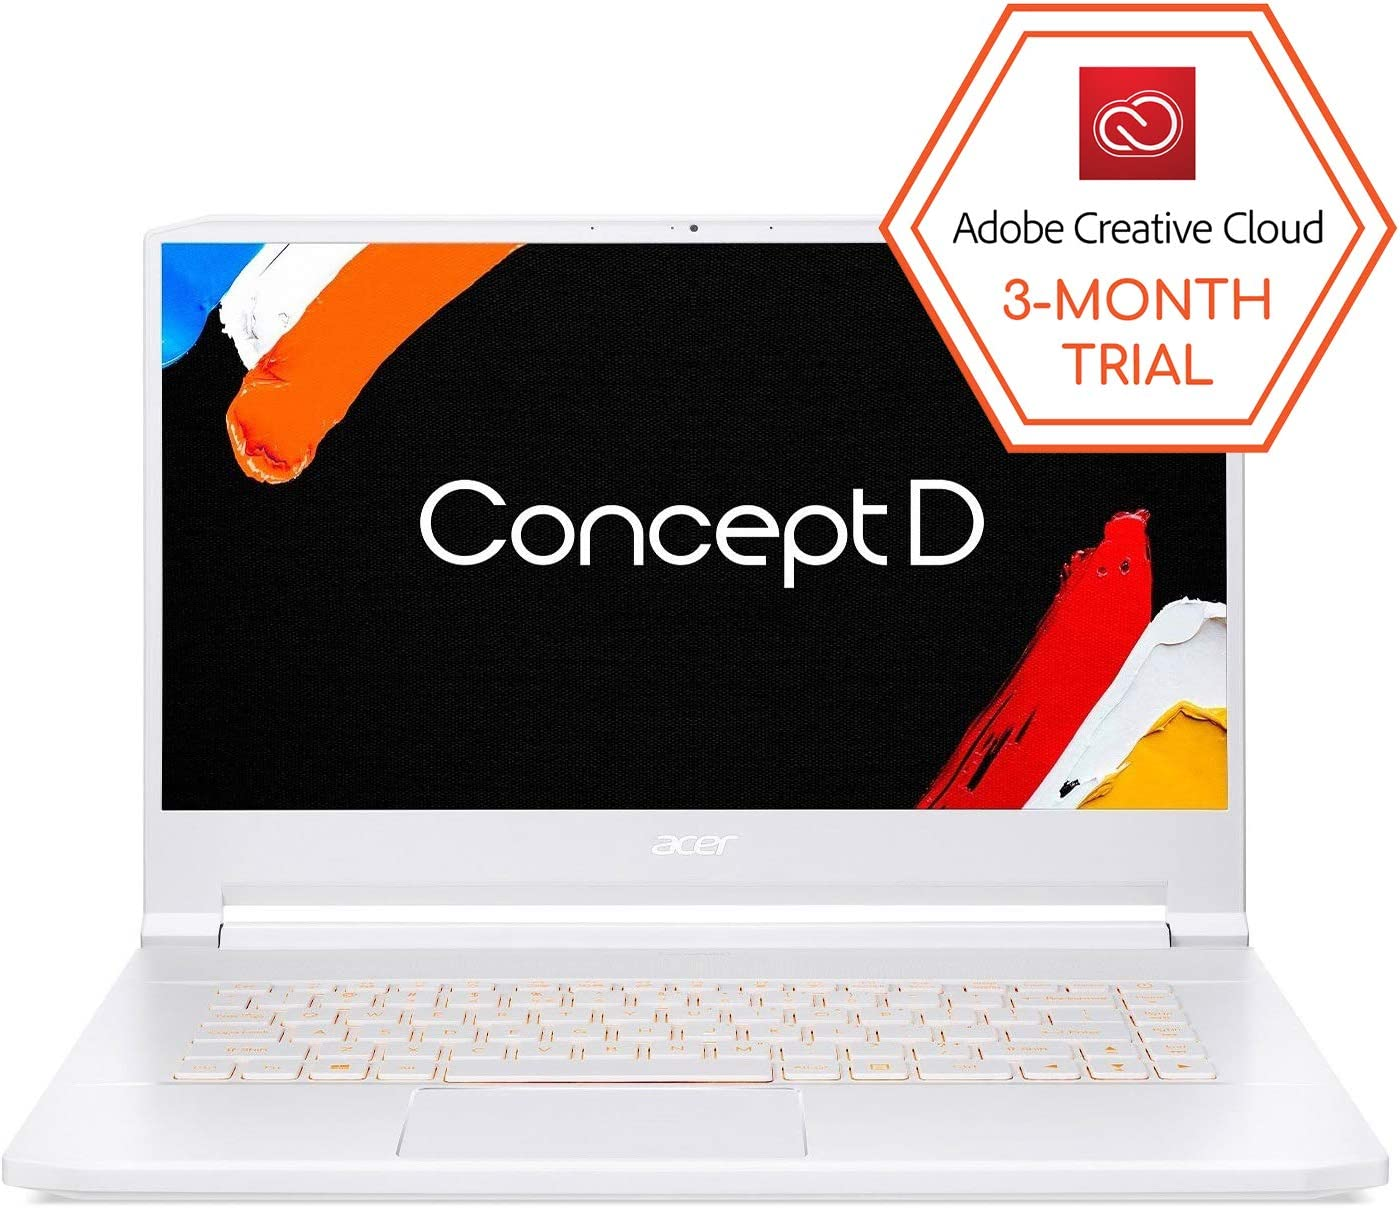 "ConceptD 7 Pro CN715-71P-727W Creator Laptop, Intel i7-9750H, NVIDIA Quadro RTX 3000, NVIDIA RTX Studio, 15.6"" 4K Ultra HD IPS, 100% Adobe RGB, Pantone Validated, Delta E<2, 32GB DDR4, 1TB NVMe SSD"